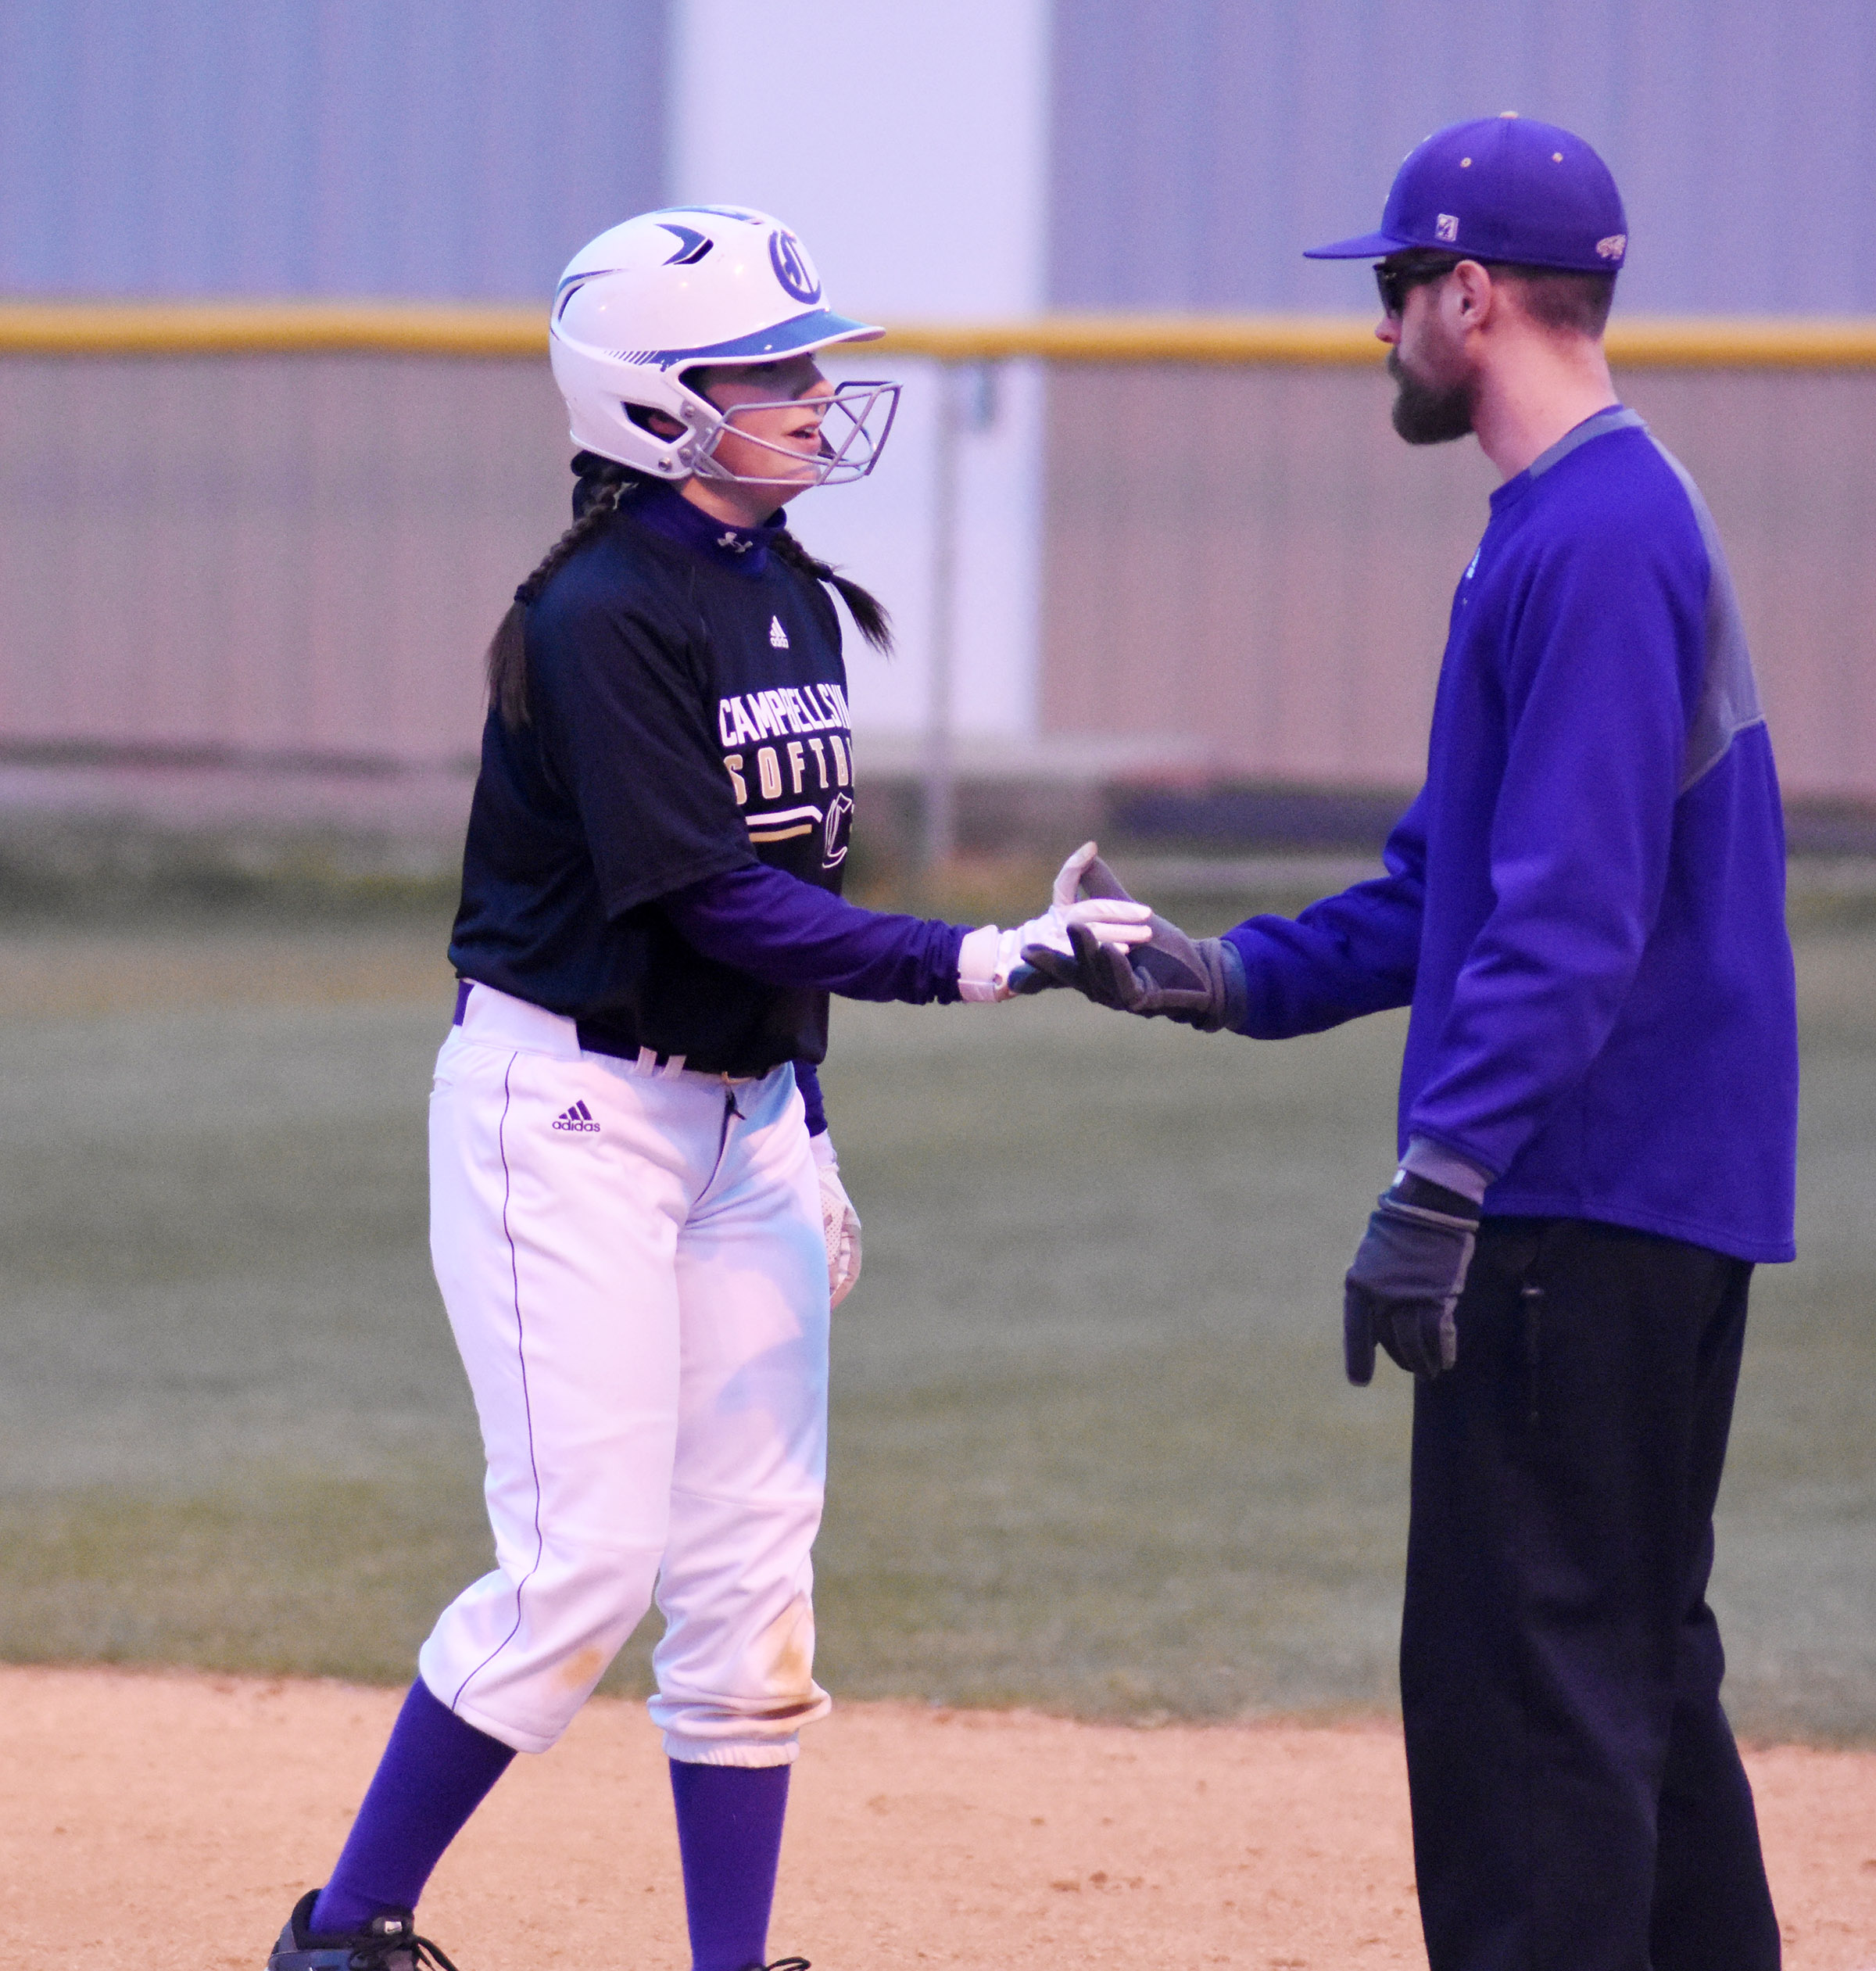 CHS sophomore Sydney Wilson receives congratulations from assistant coach Matthew Schmuck after a base hit.